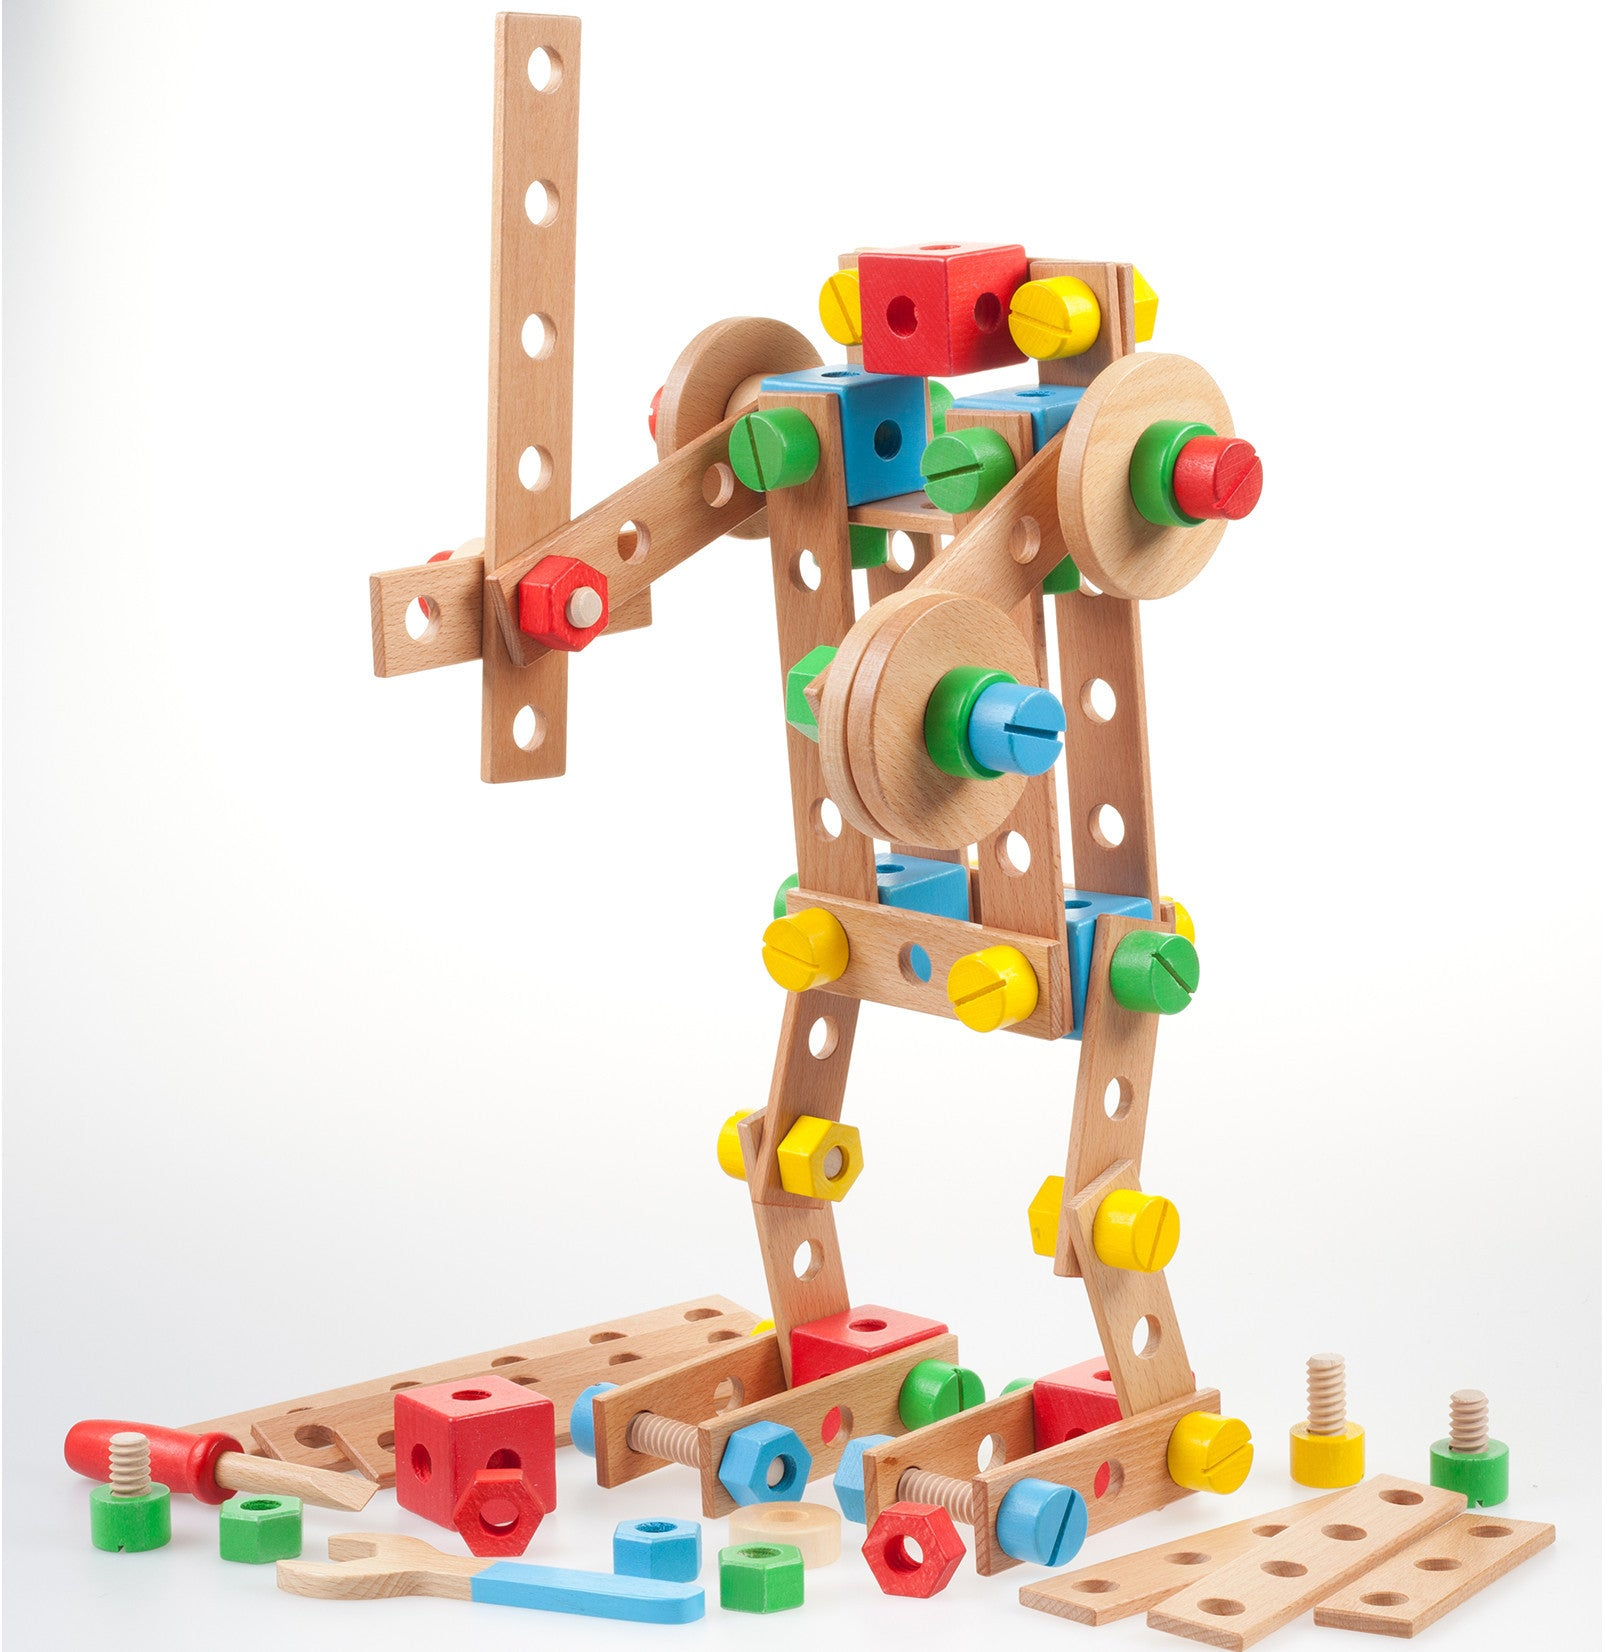 Construction Set - Tidlo, robot example